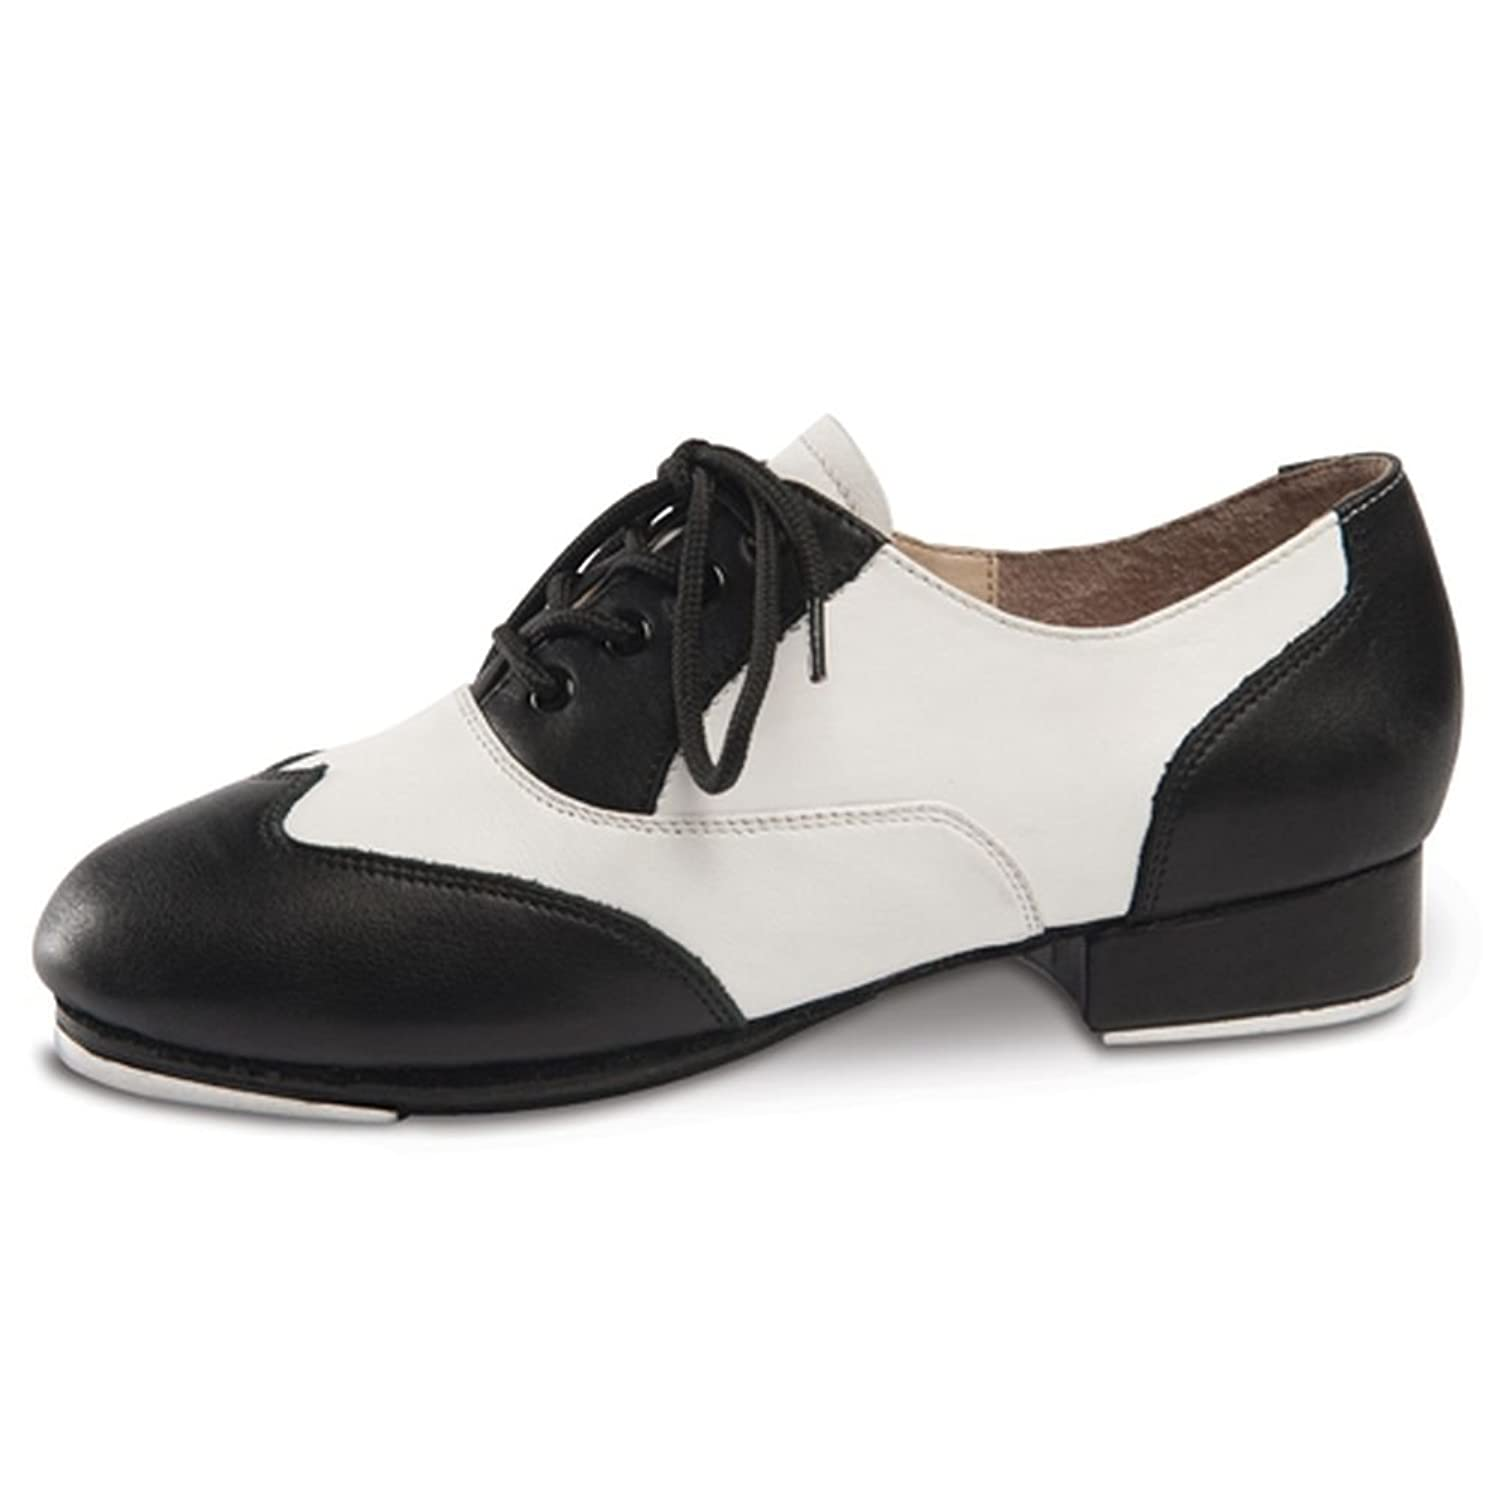 DIY Dance Shoes- Ballroom, Lindy, Swing Danshuz Womens Black White Saddle Style Tap Dance Shoes Size 3-11 $119.95 AT vintagedancer.com